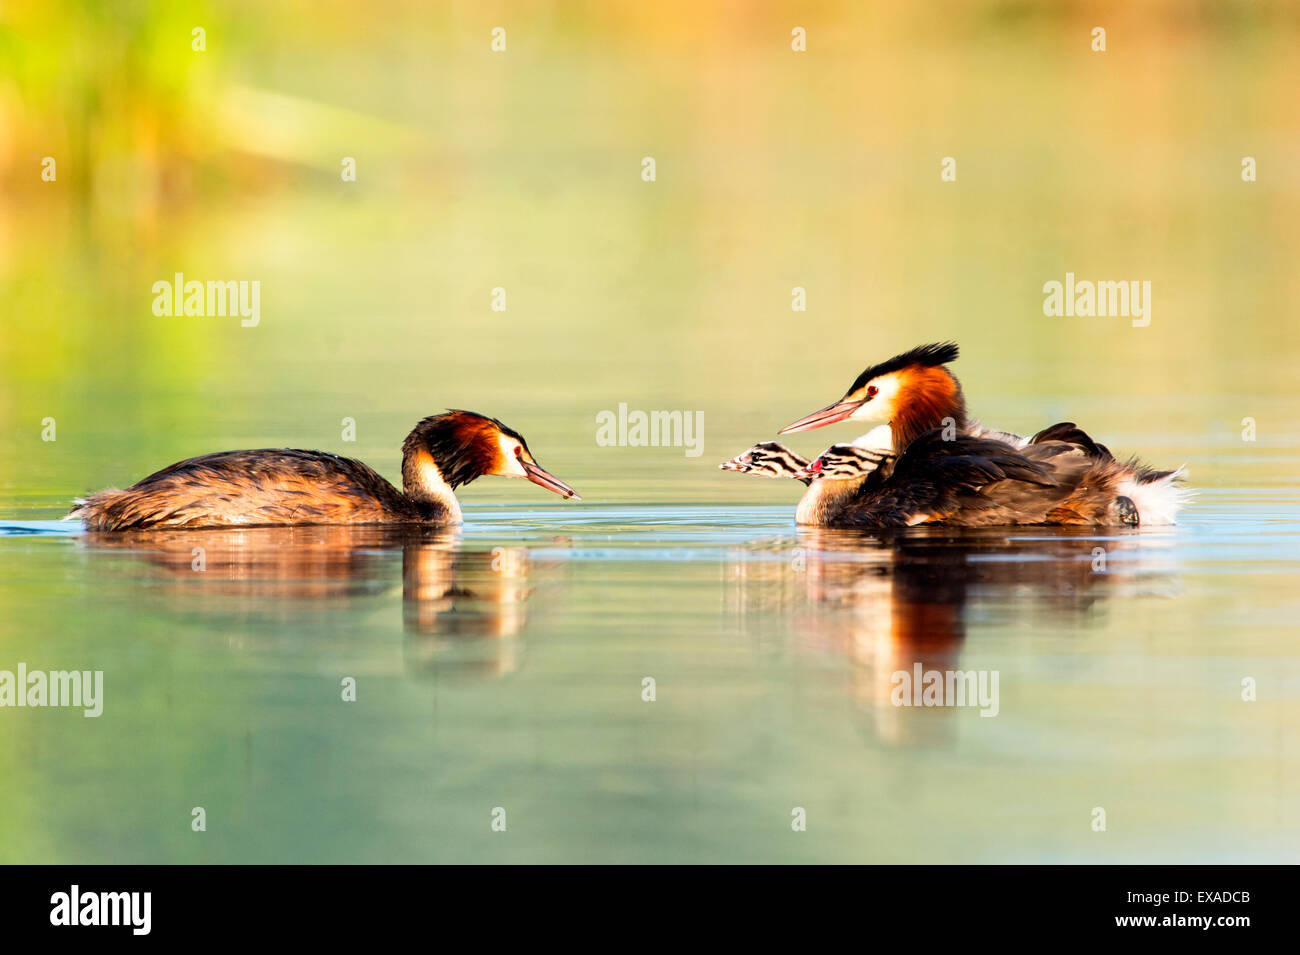 Great Crested Grebes (Podiceps cristatus) with chicks on the back, Canton of Vaud, Switzerland - Stock Image